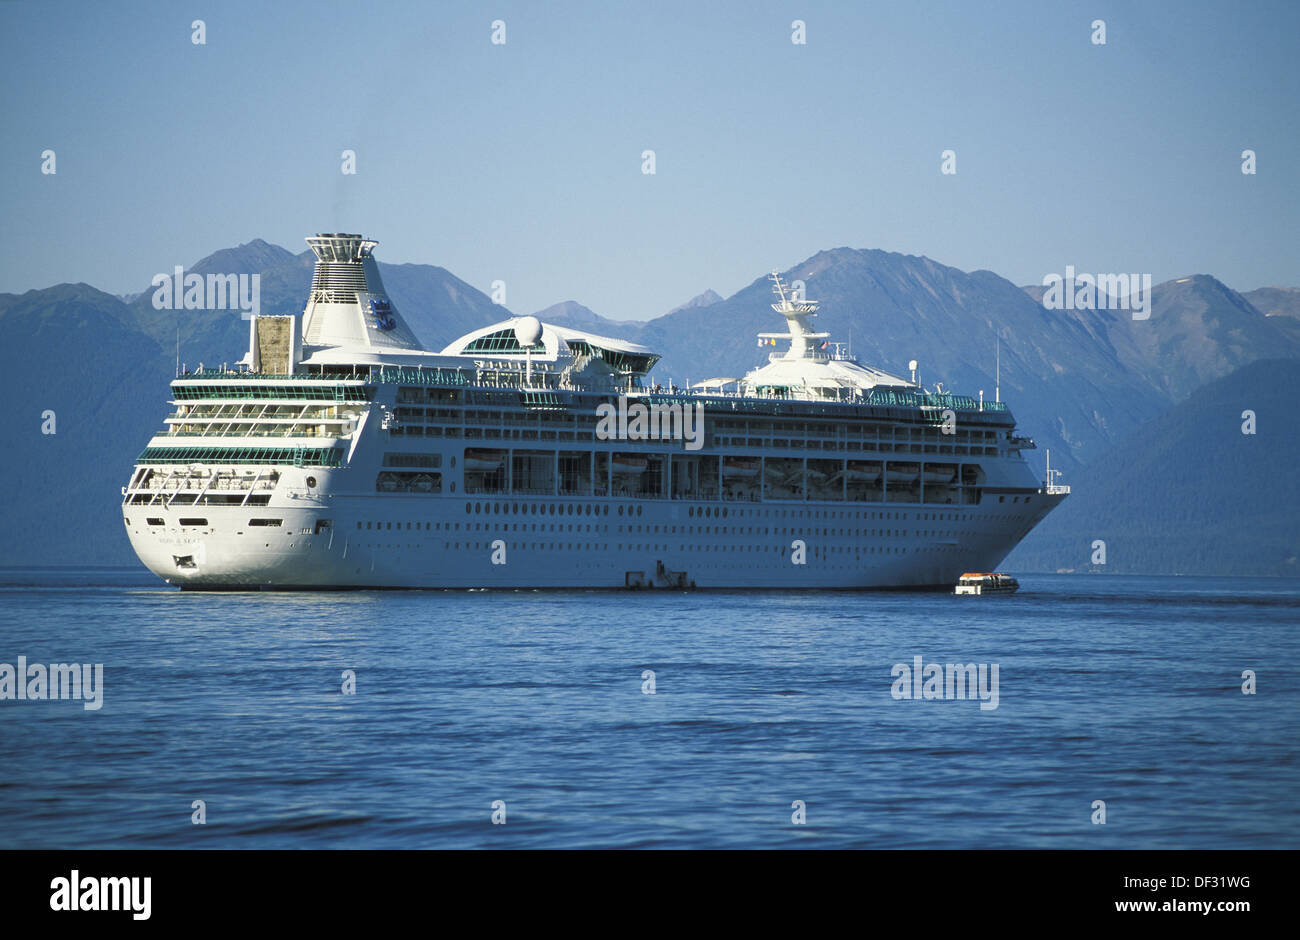 Cruise Ship And Small Rescue Ship Gulf Of Alaska Alaska Stock - Cruise ship rescue